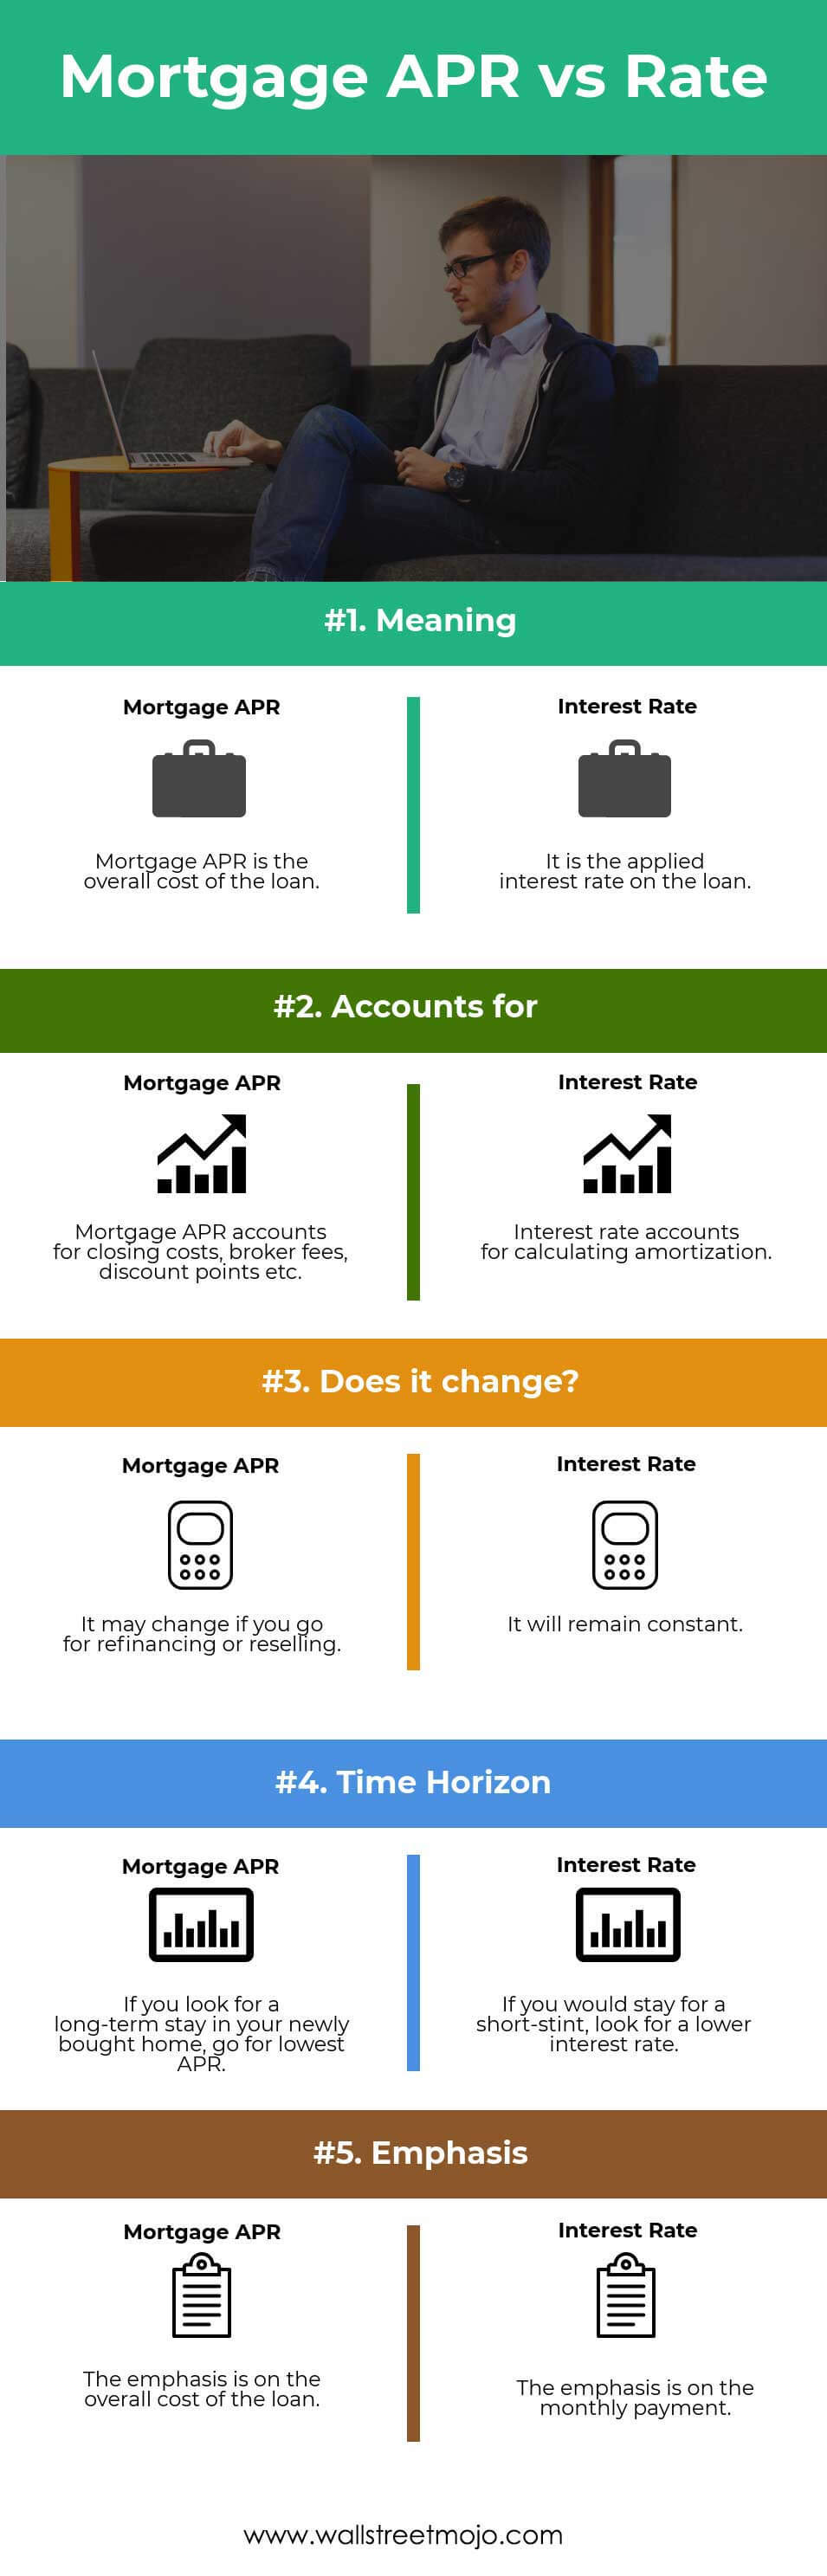 Mortgage-APR-vs-Rate